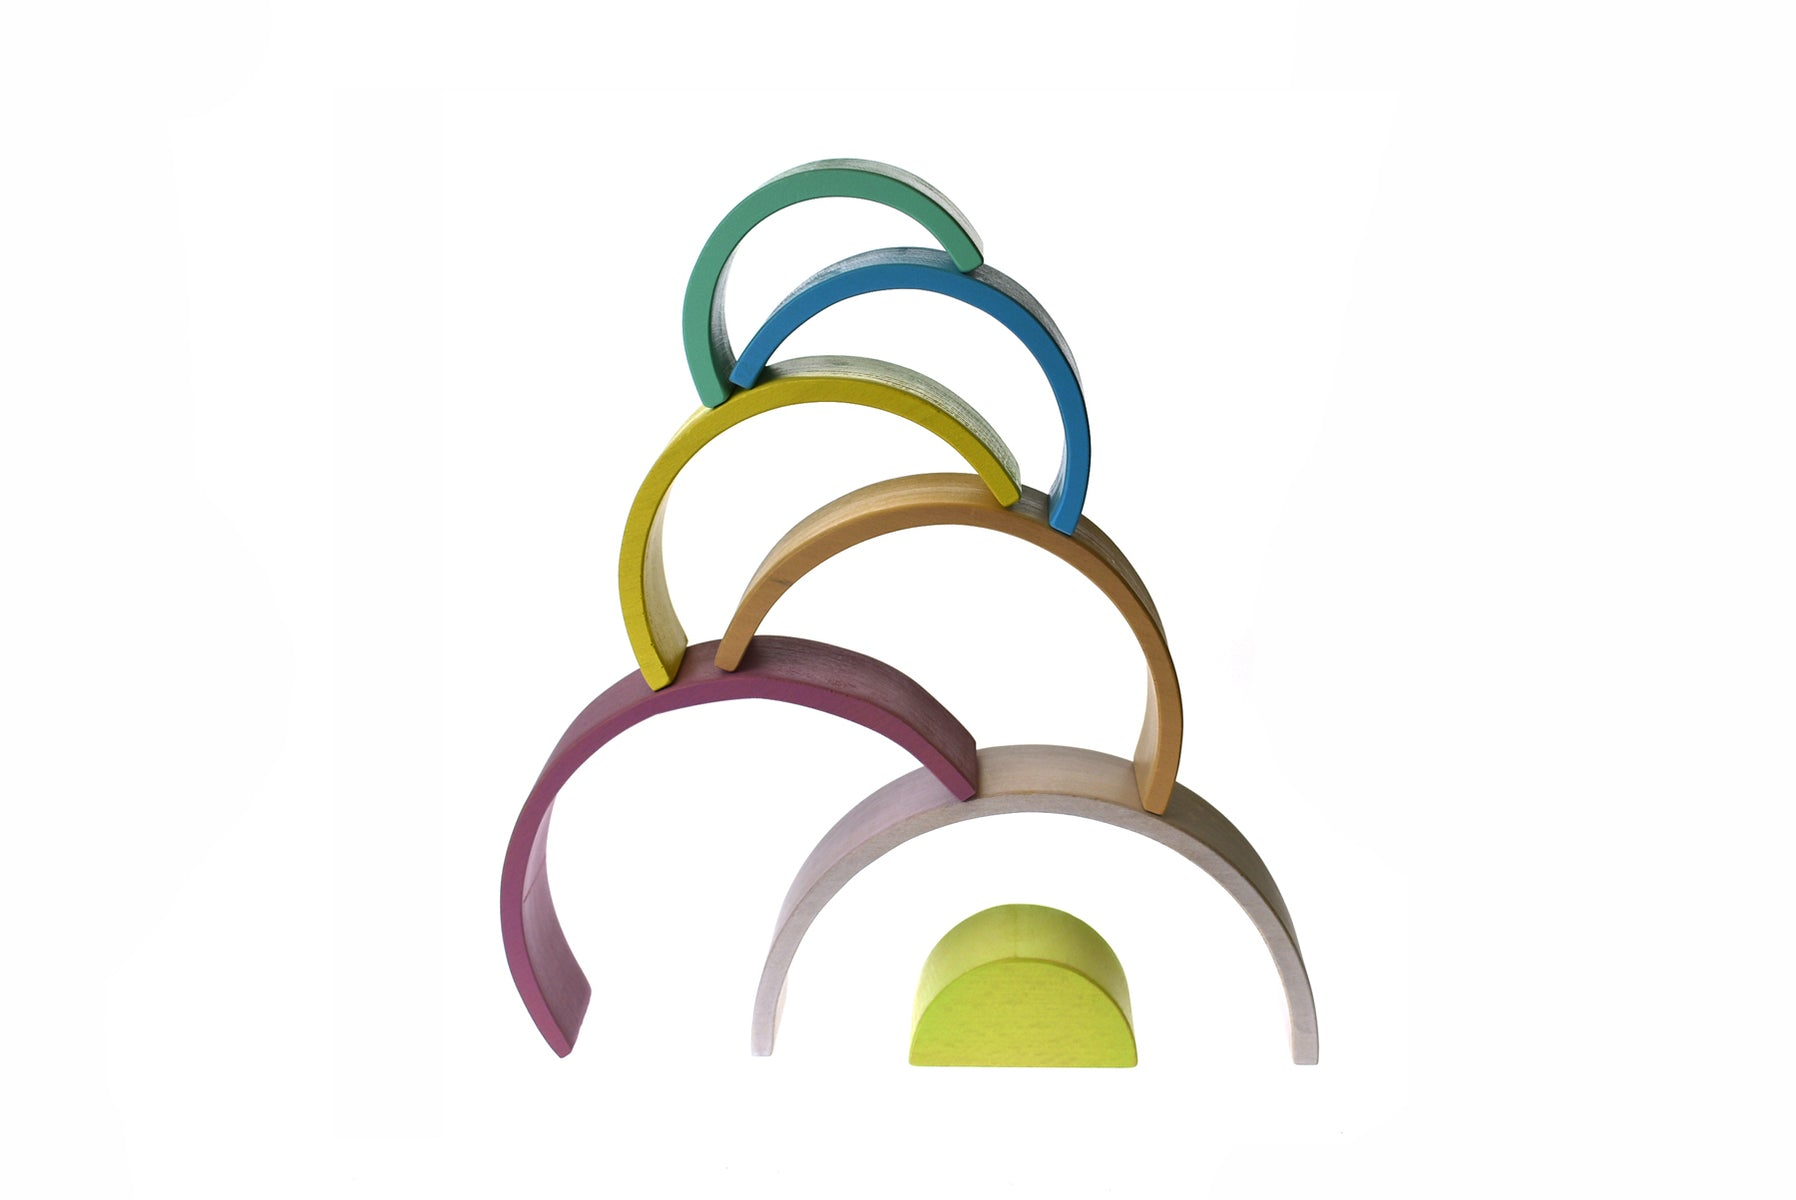 Playset Rainbows - Assorted Colours